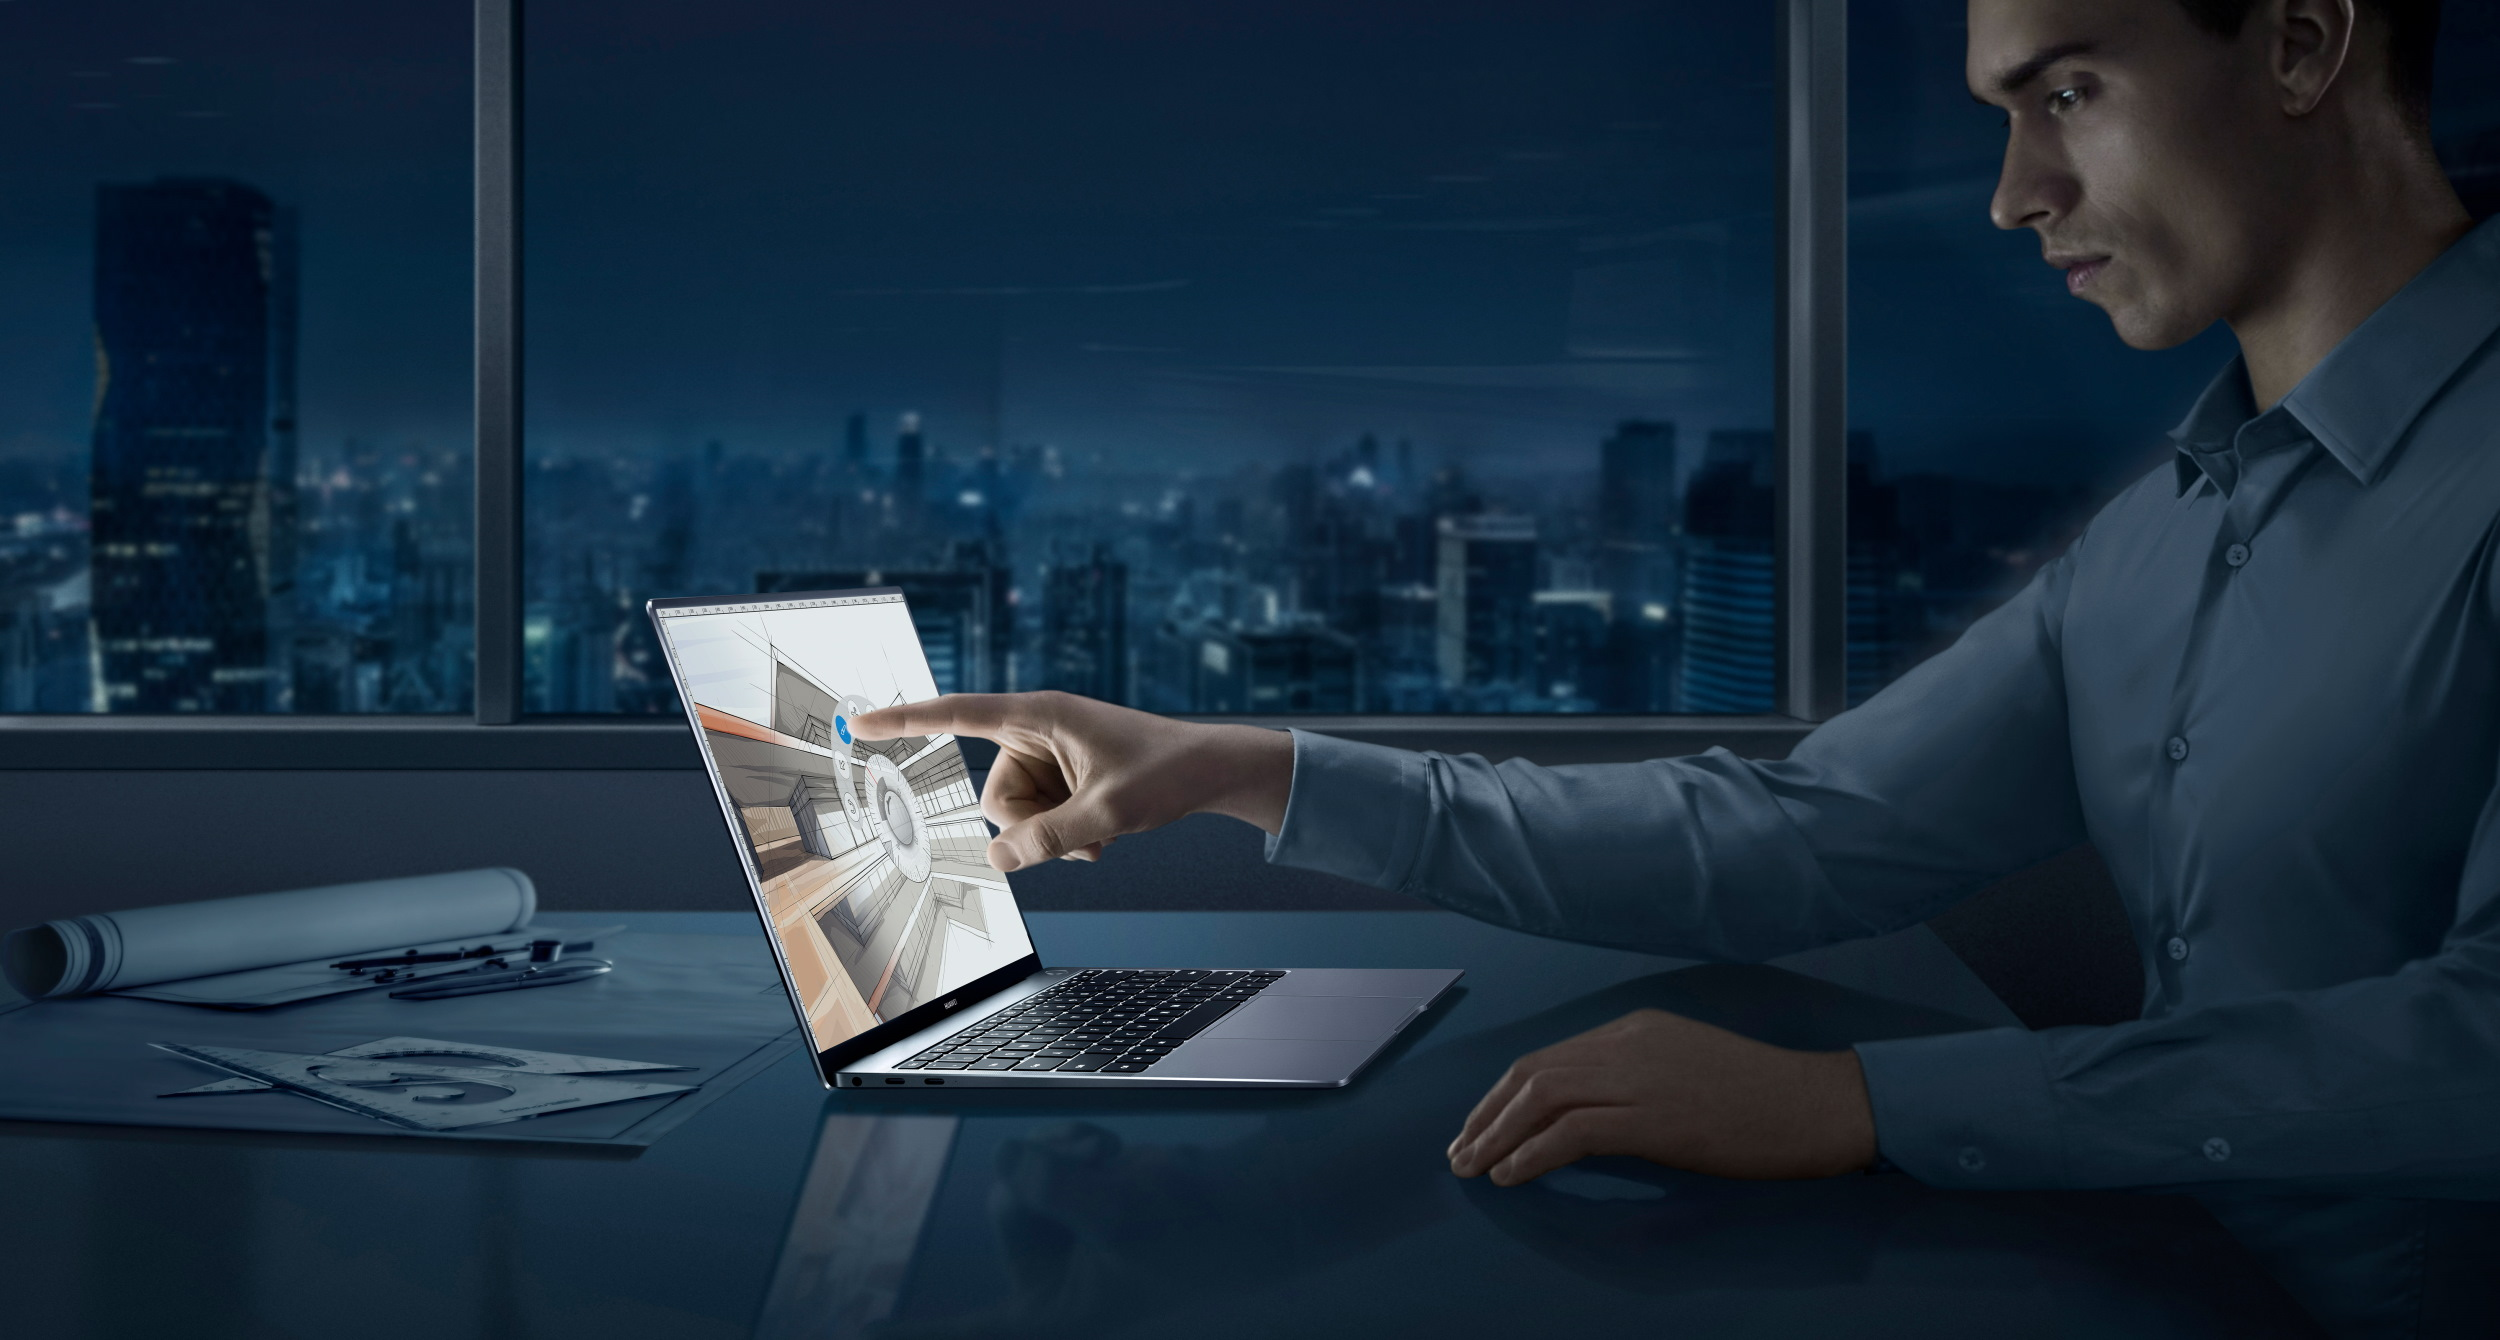 New Huawei MateBook X Pro 2021 Is All About Productivity On The Go